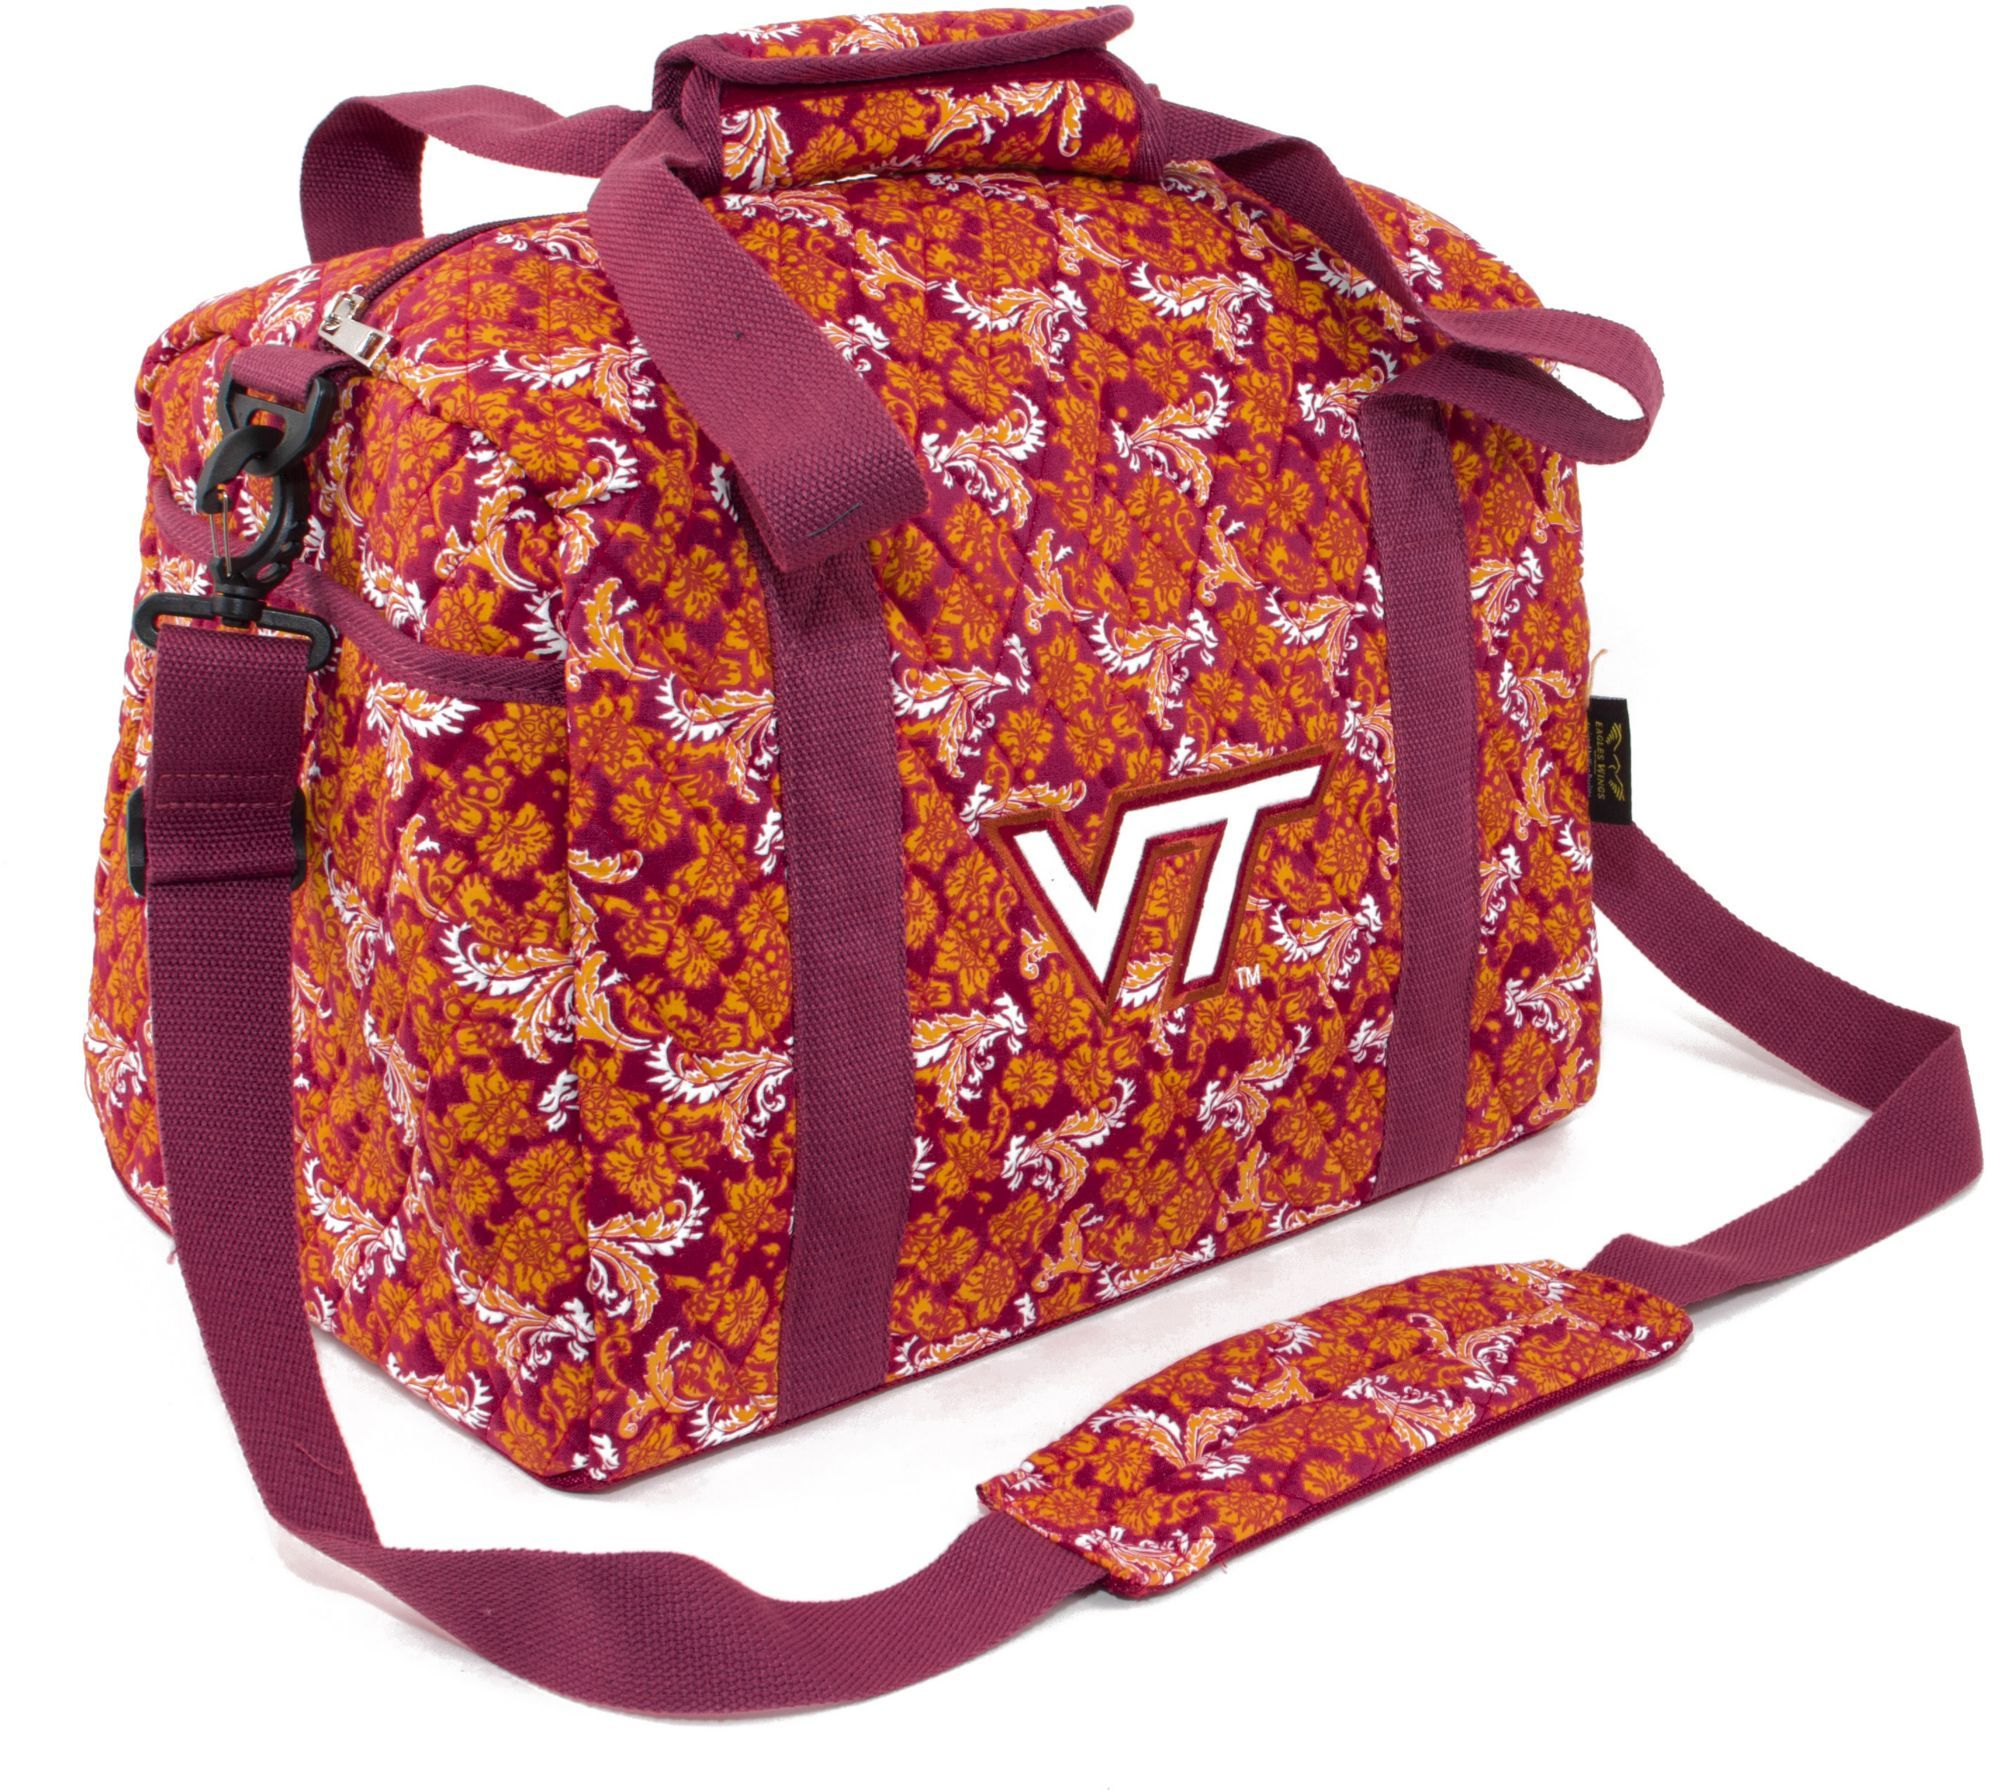 dcf47645f18e Wings Virginia Tech Hokies Quilted Cotton Mini Duffle Bag | Products ...